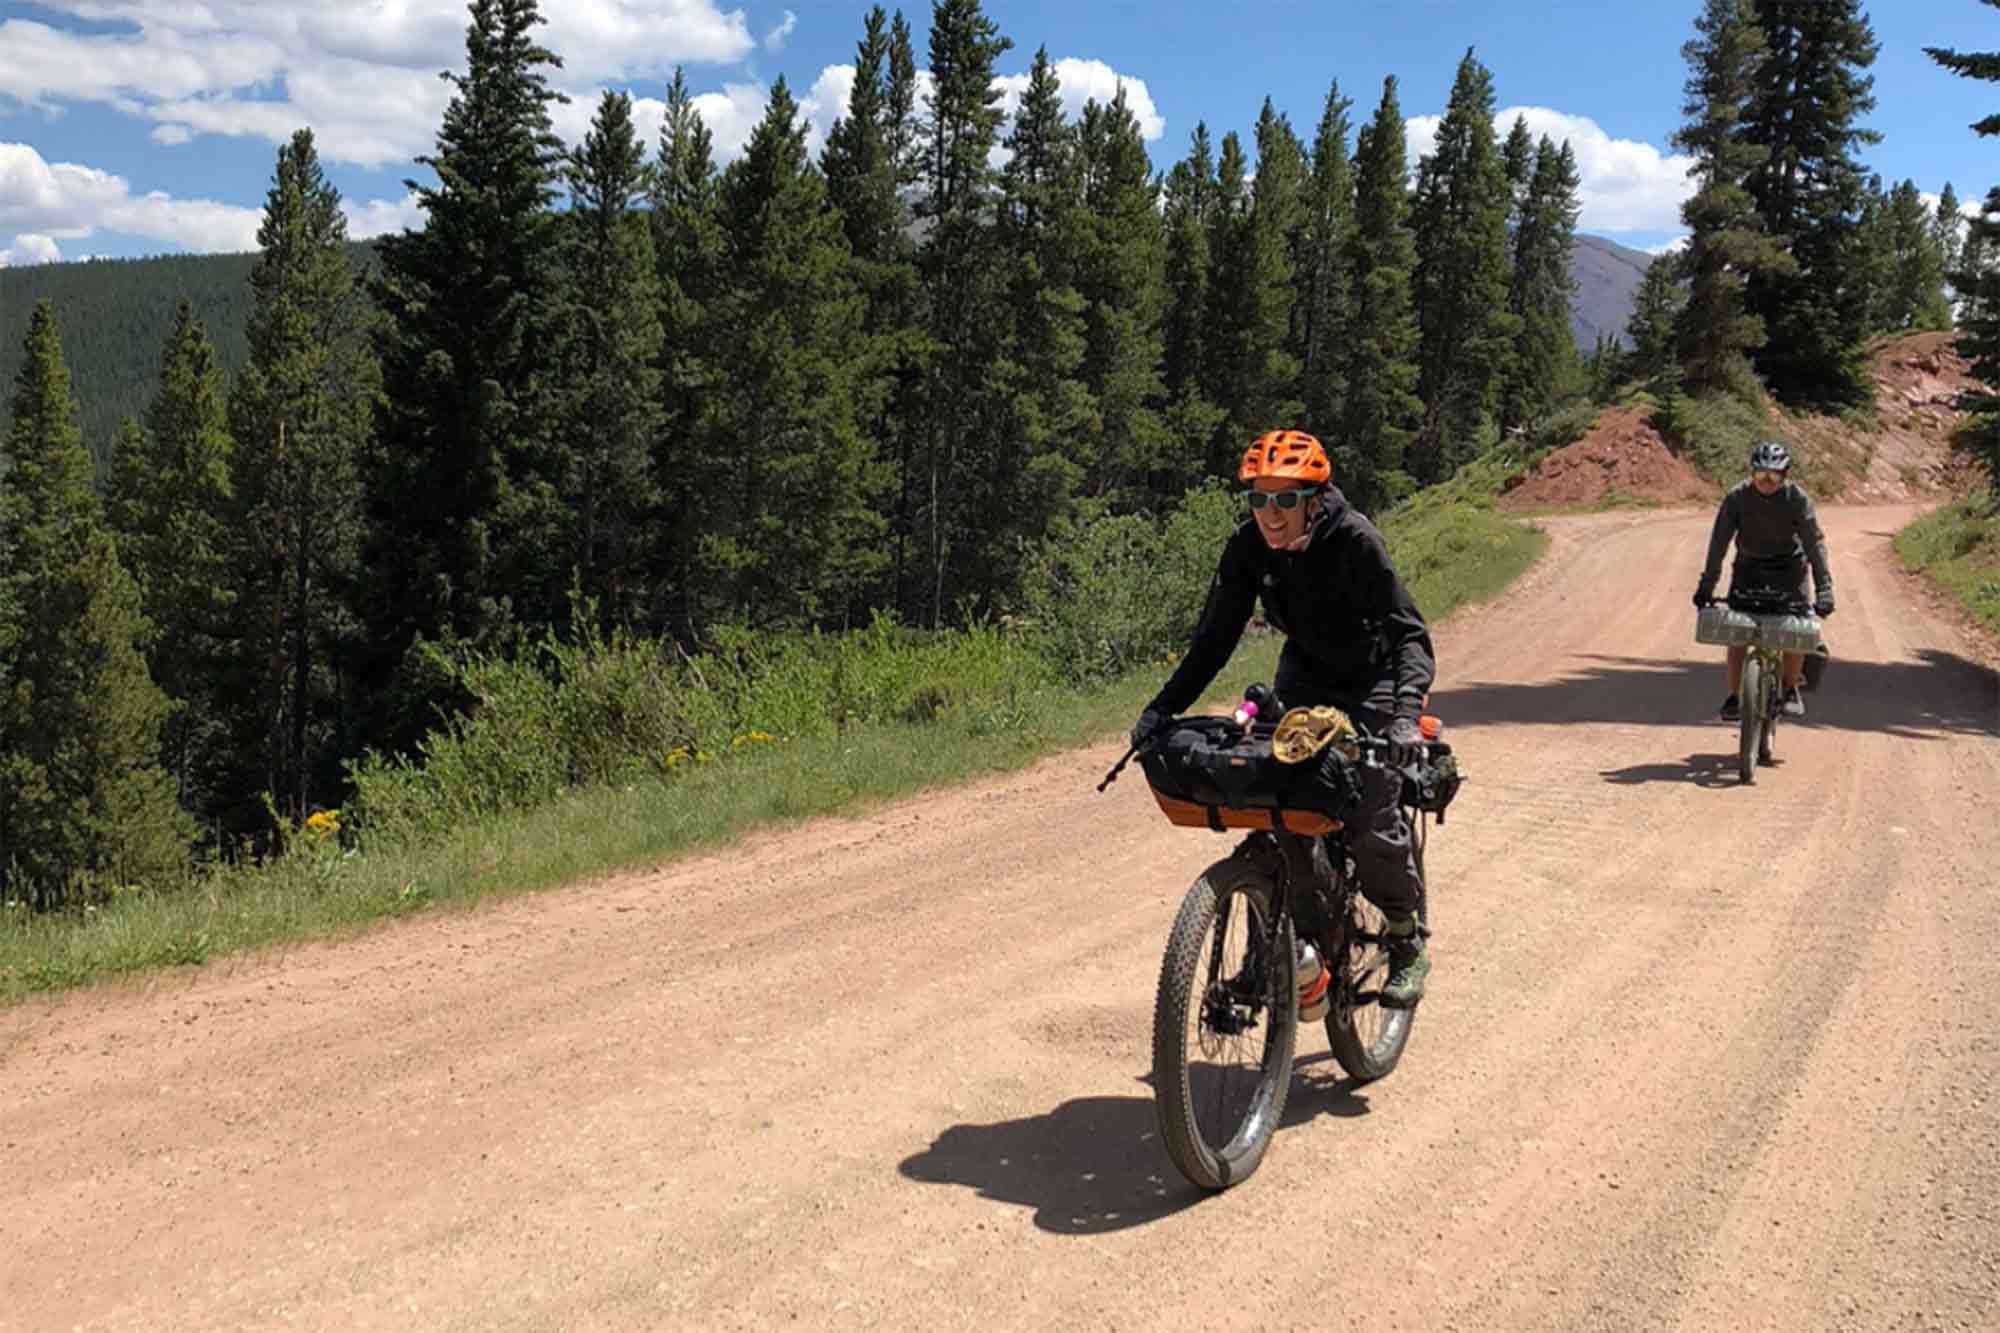 Cyclist smiles riding up a hill on a gravel road in the pine trees to the side with another rider tailing behind